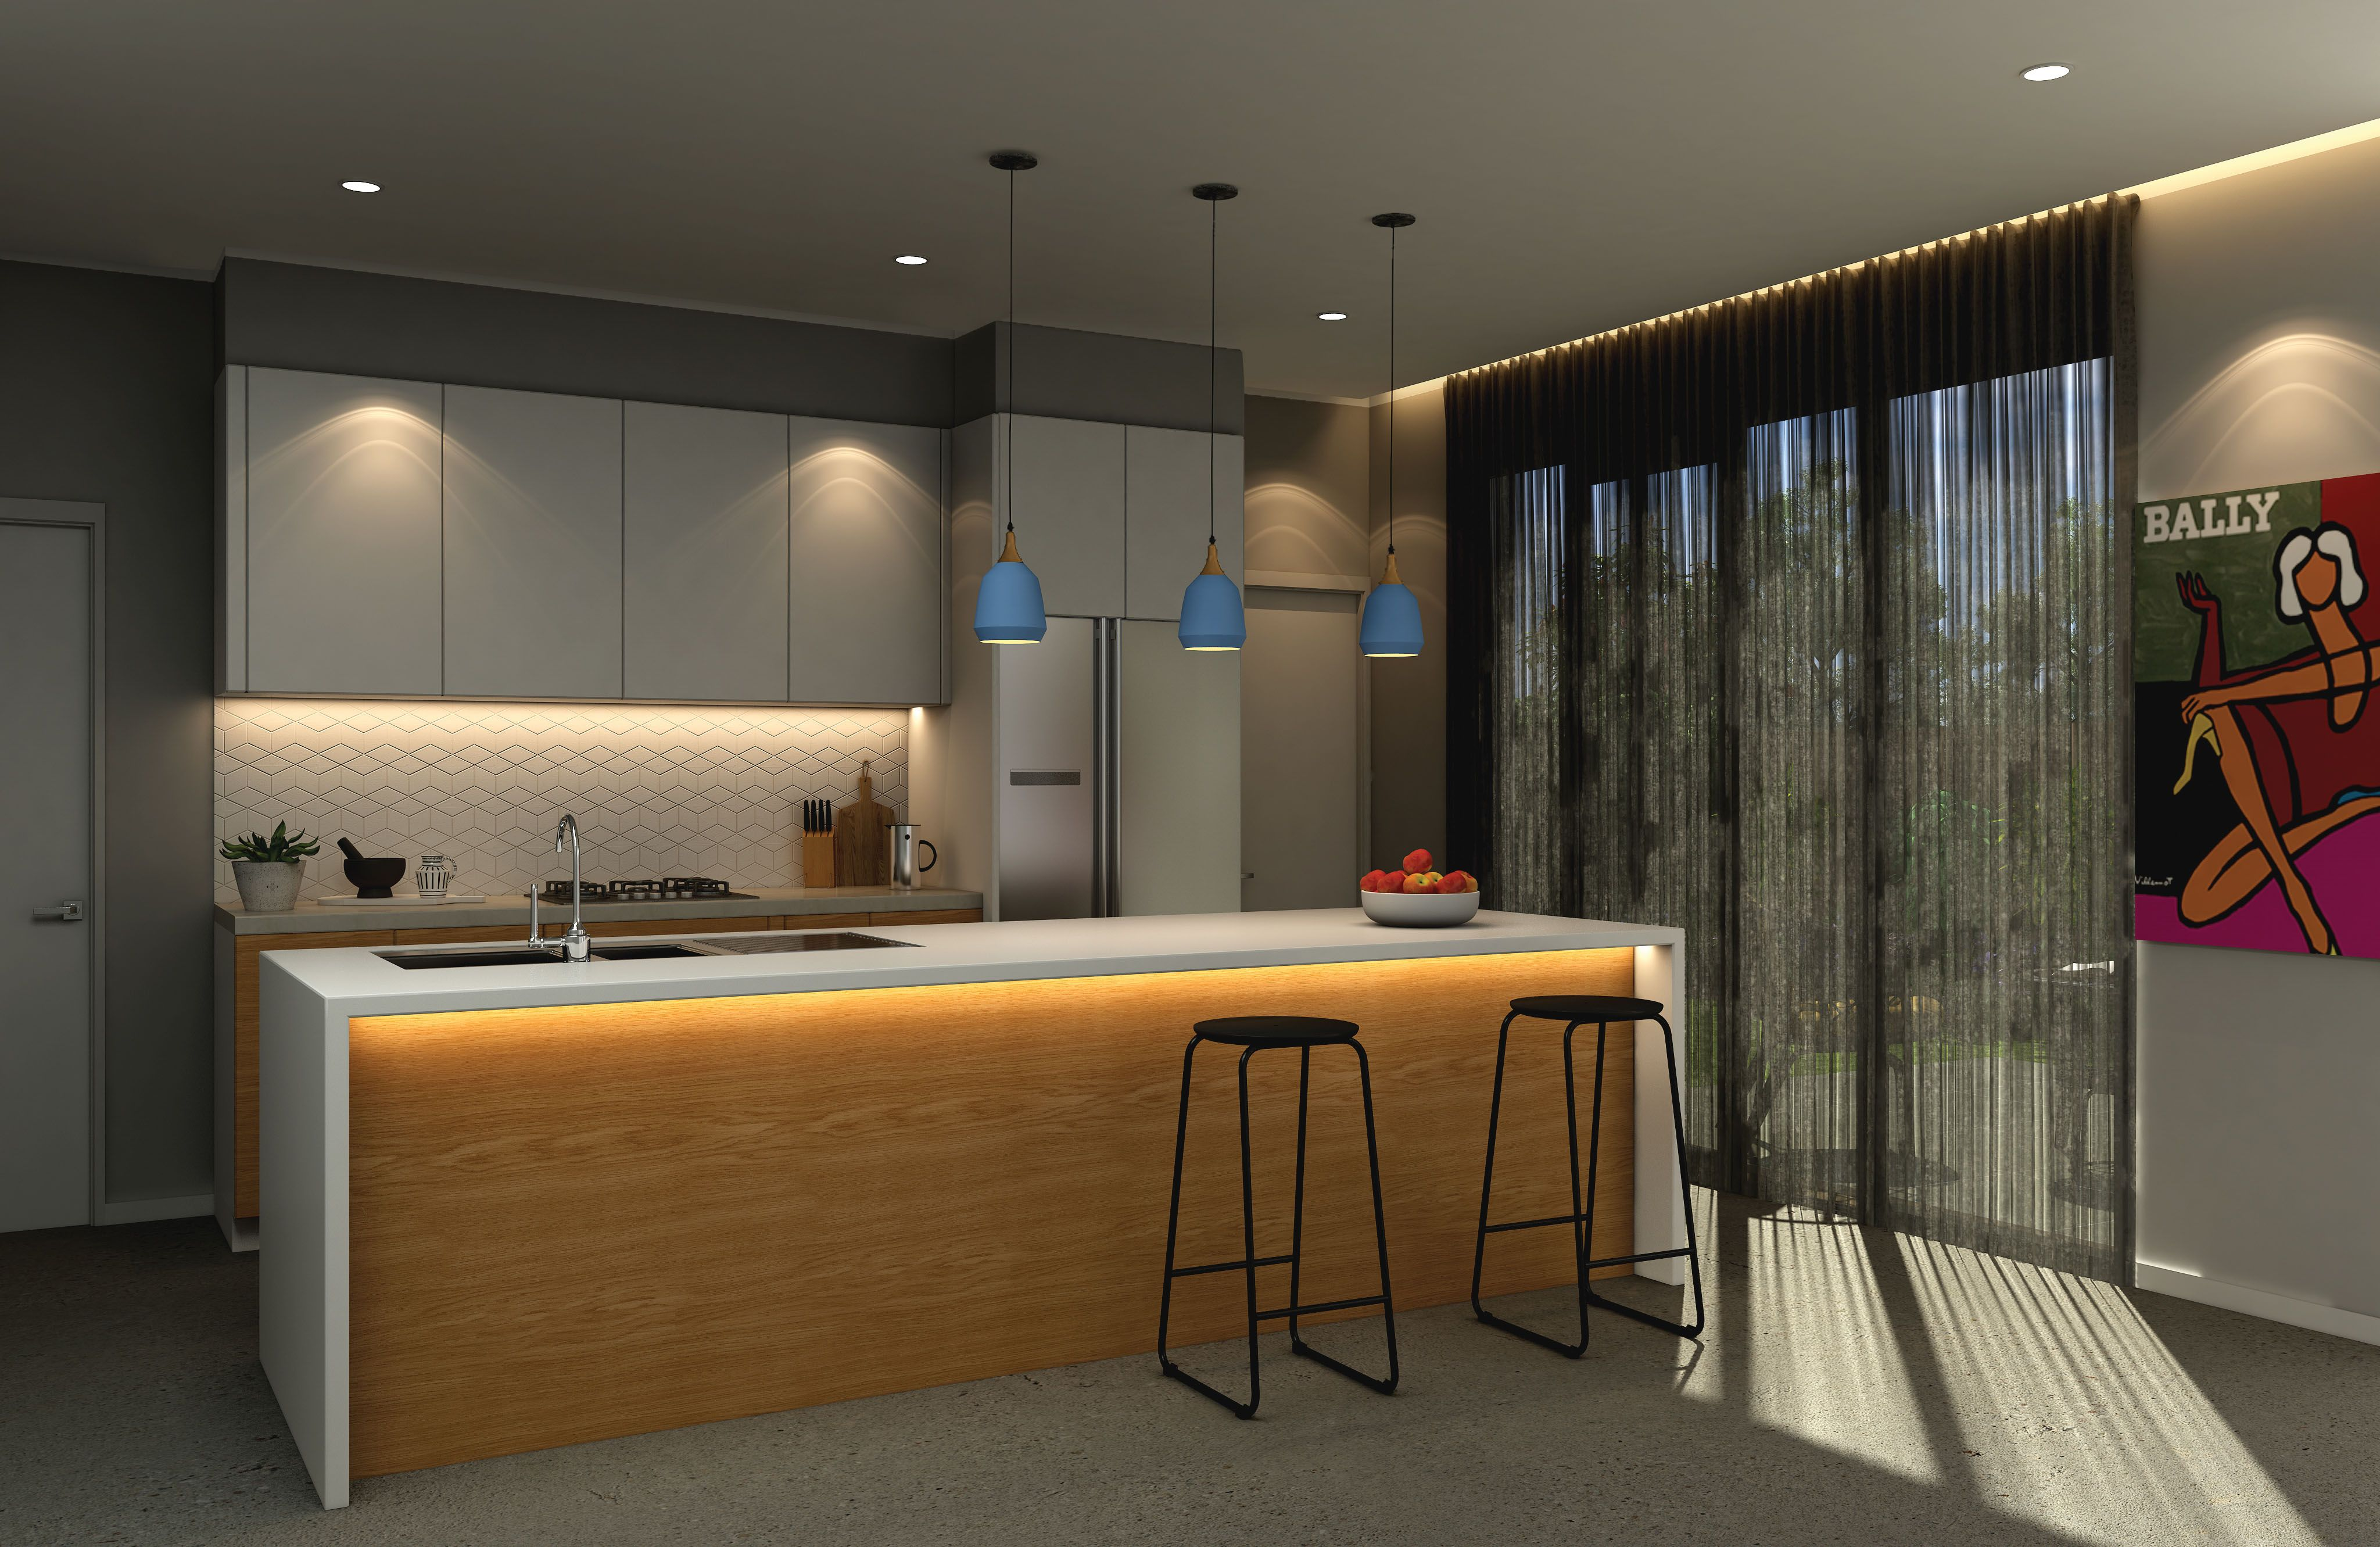 Transform your kitchen with light layering. Use downlights